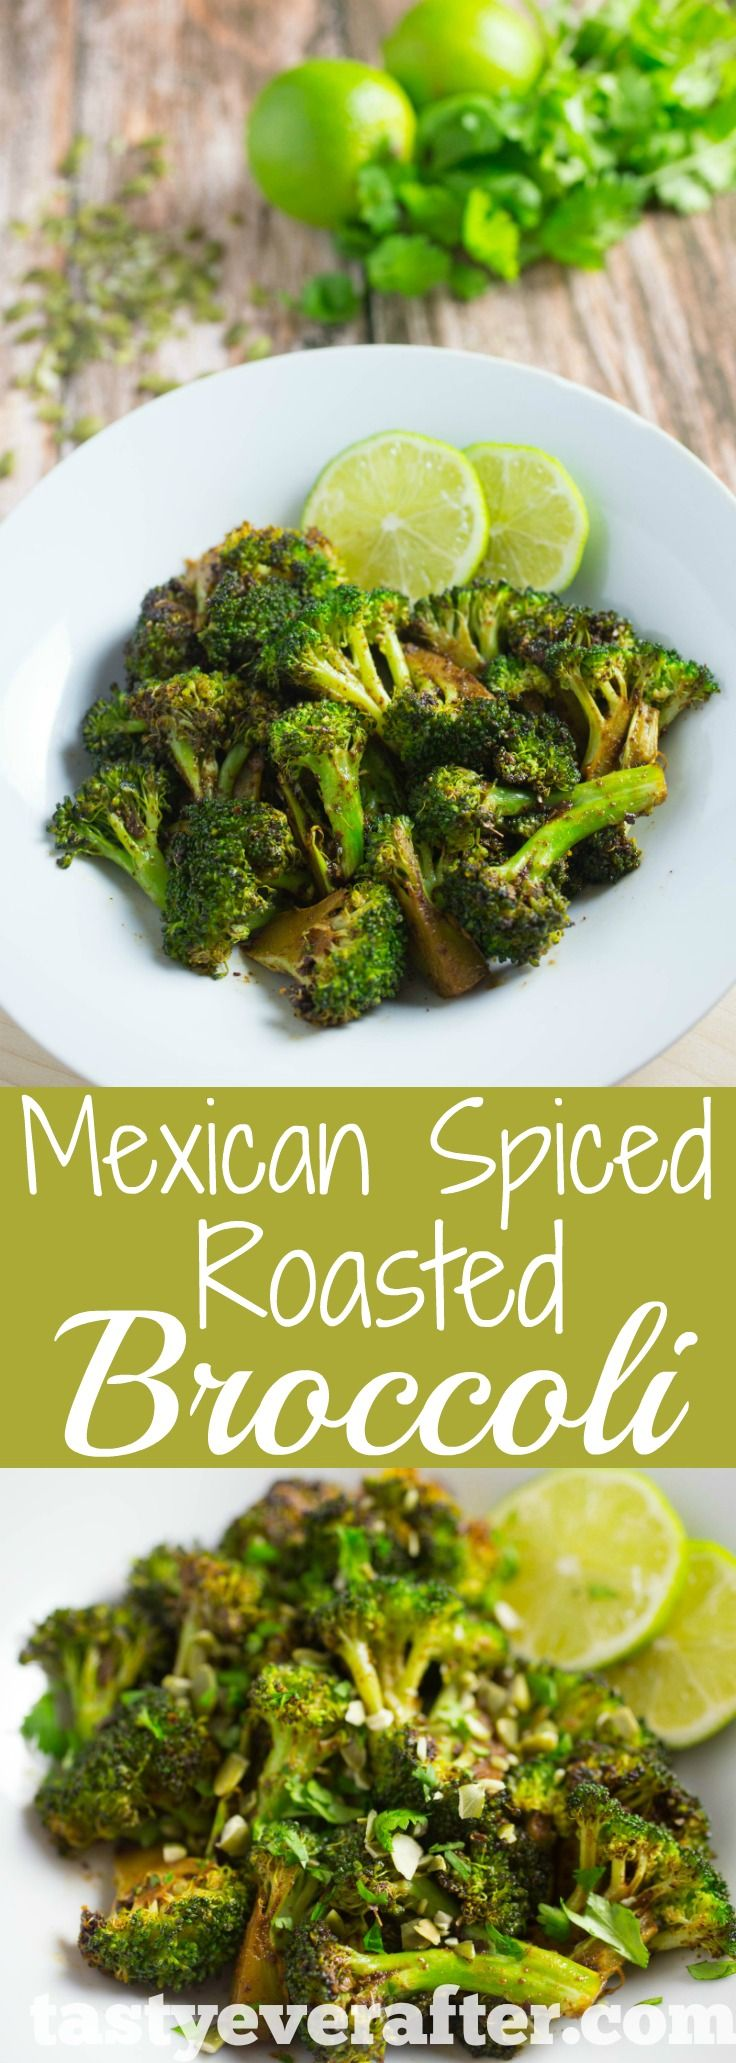 Easy And Healthy Mexican Spiced Veggie Side Dish That Takes Less Than 30  Minutes To Make